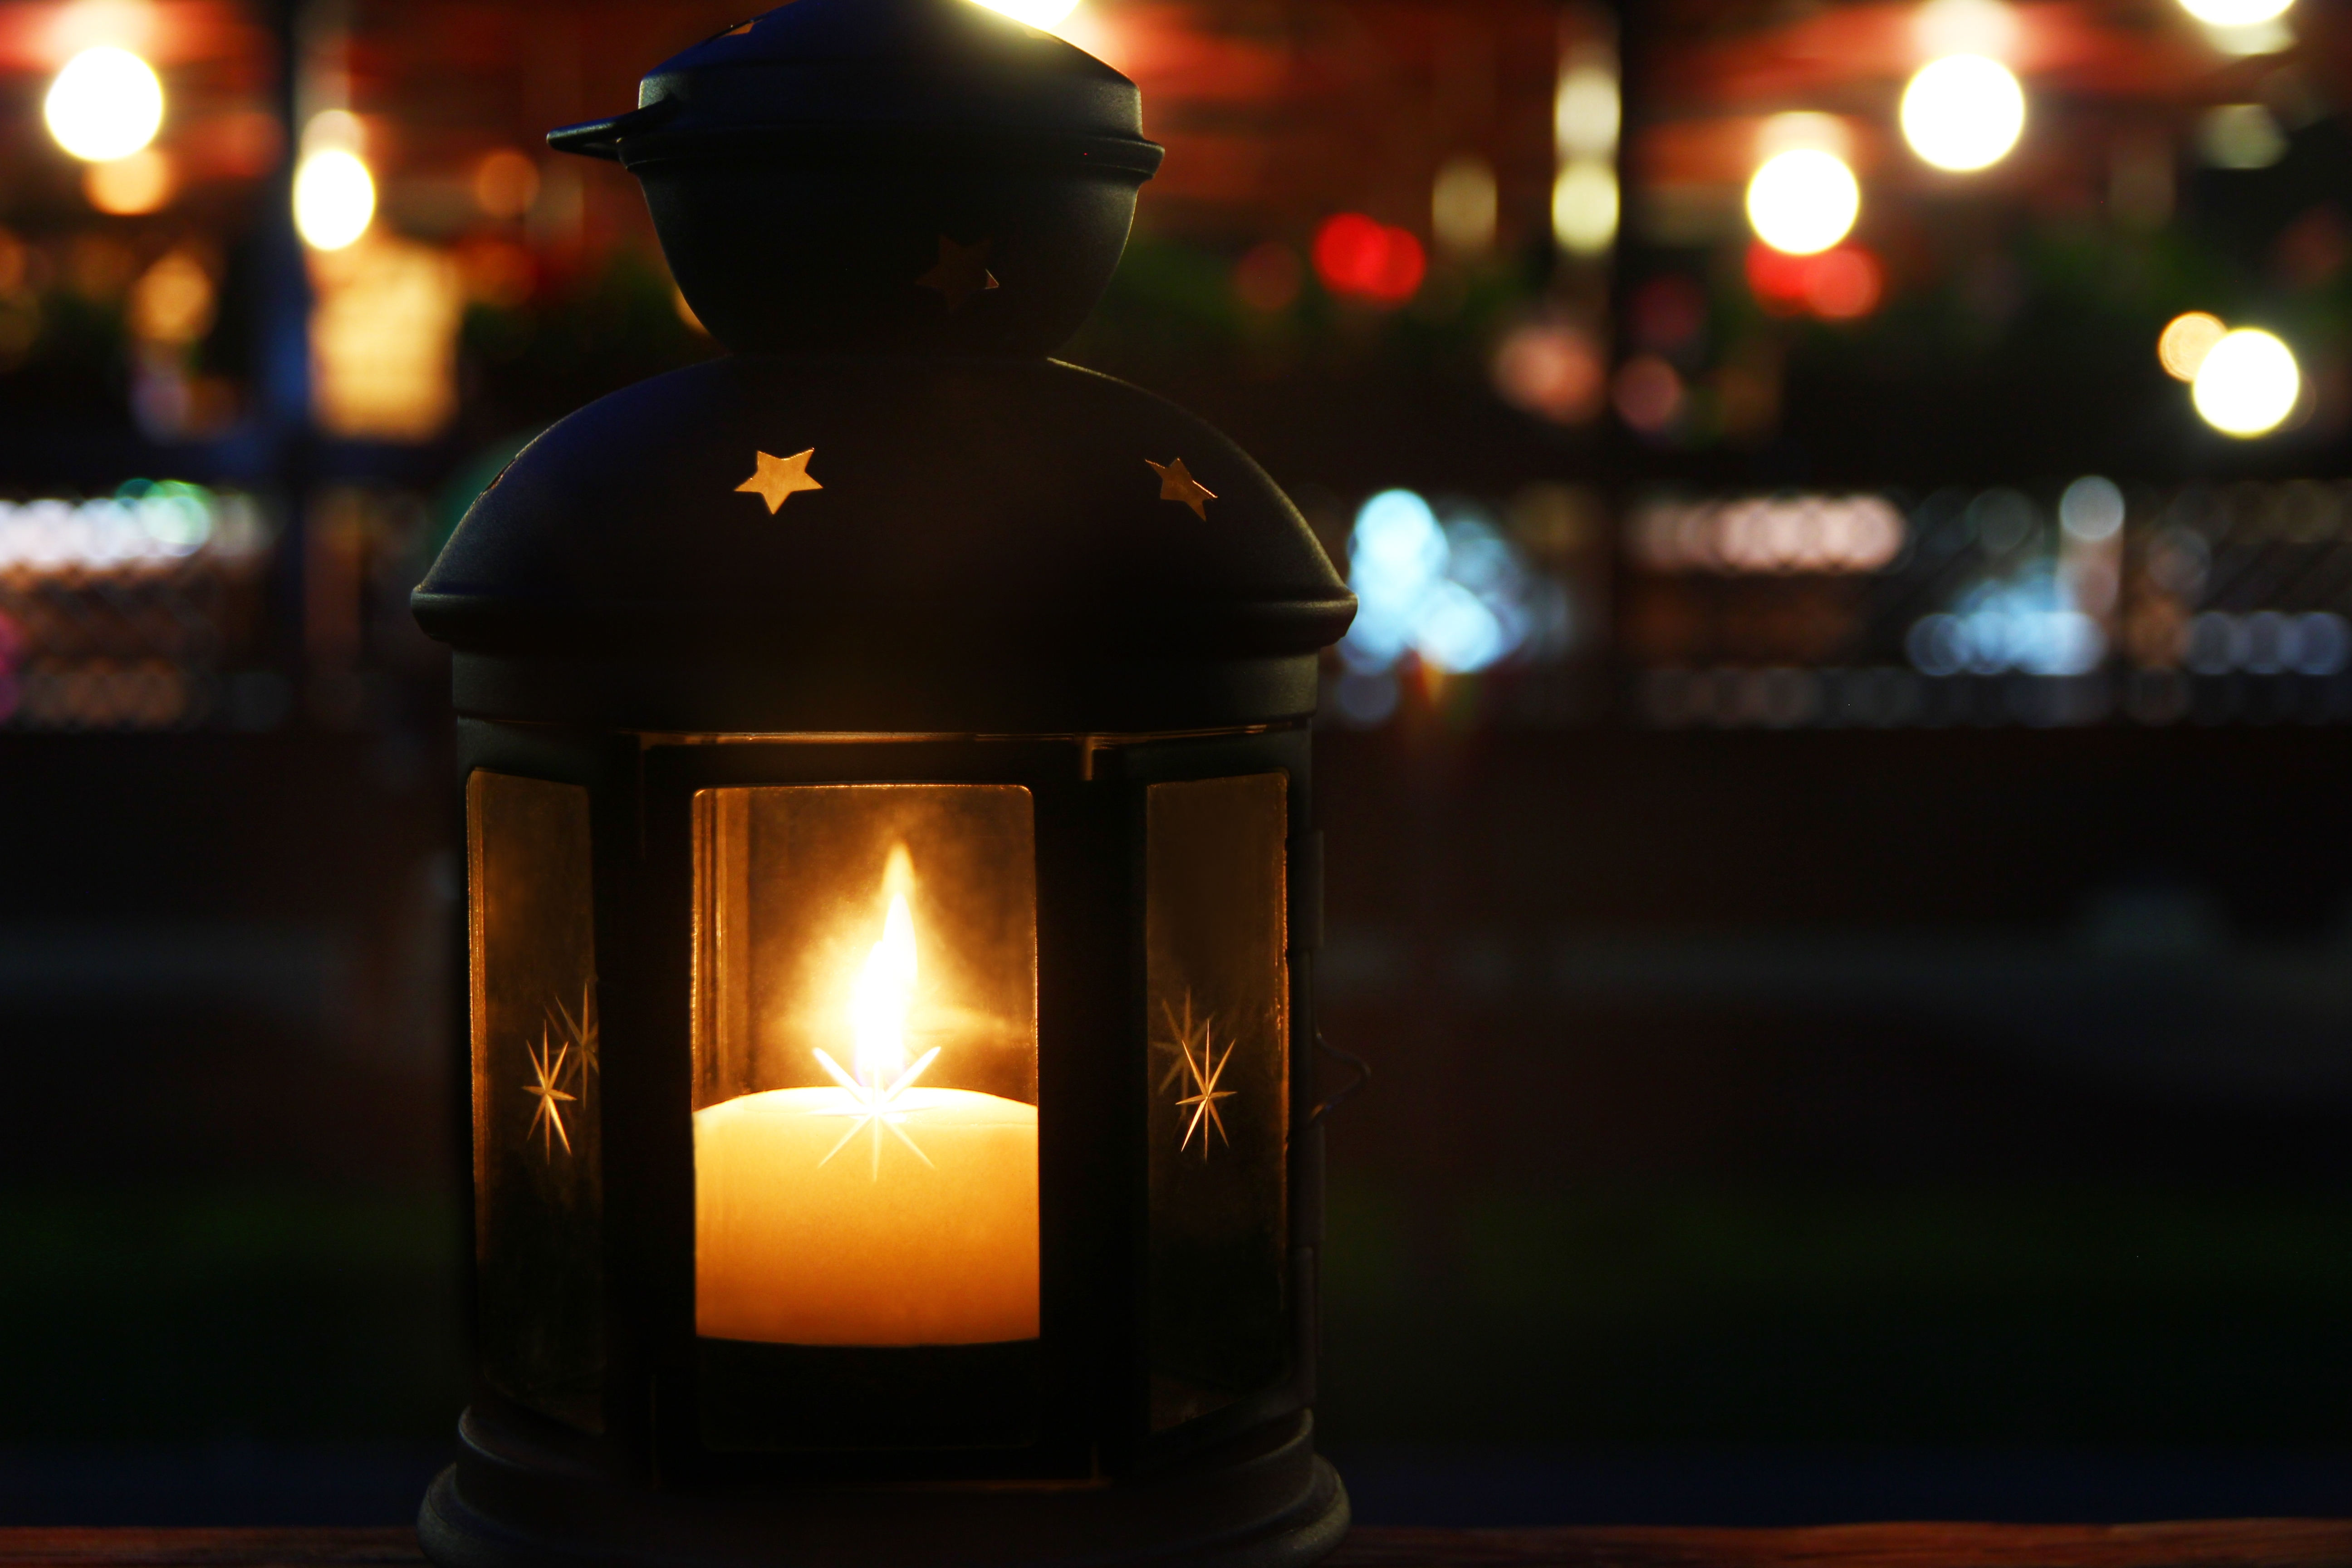 How To Use Outdoor Decorative Candle Lanterns: 5 Steps throughout Outdoor Decorative Lanterns (Image 8 of 20)